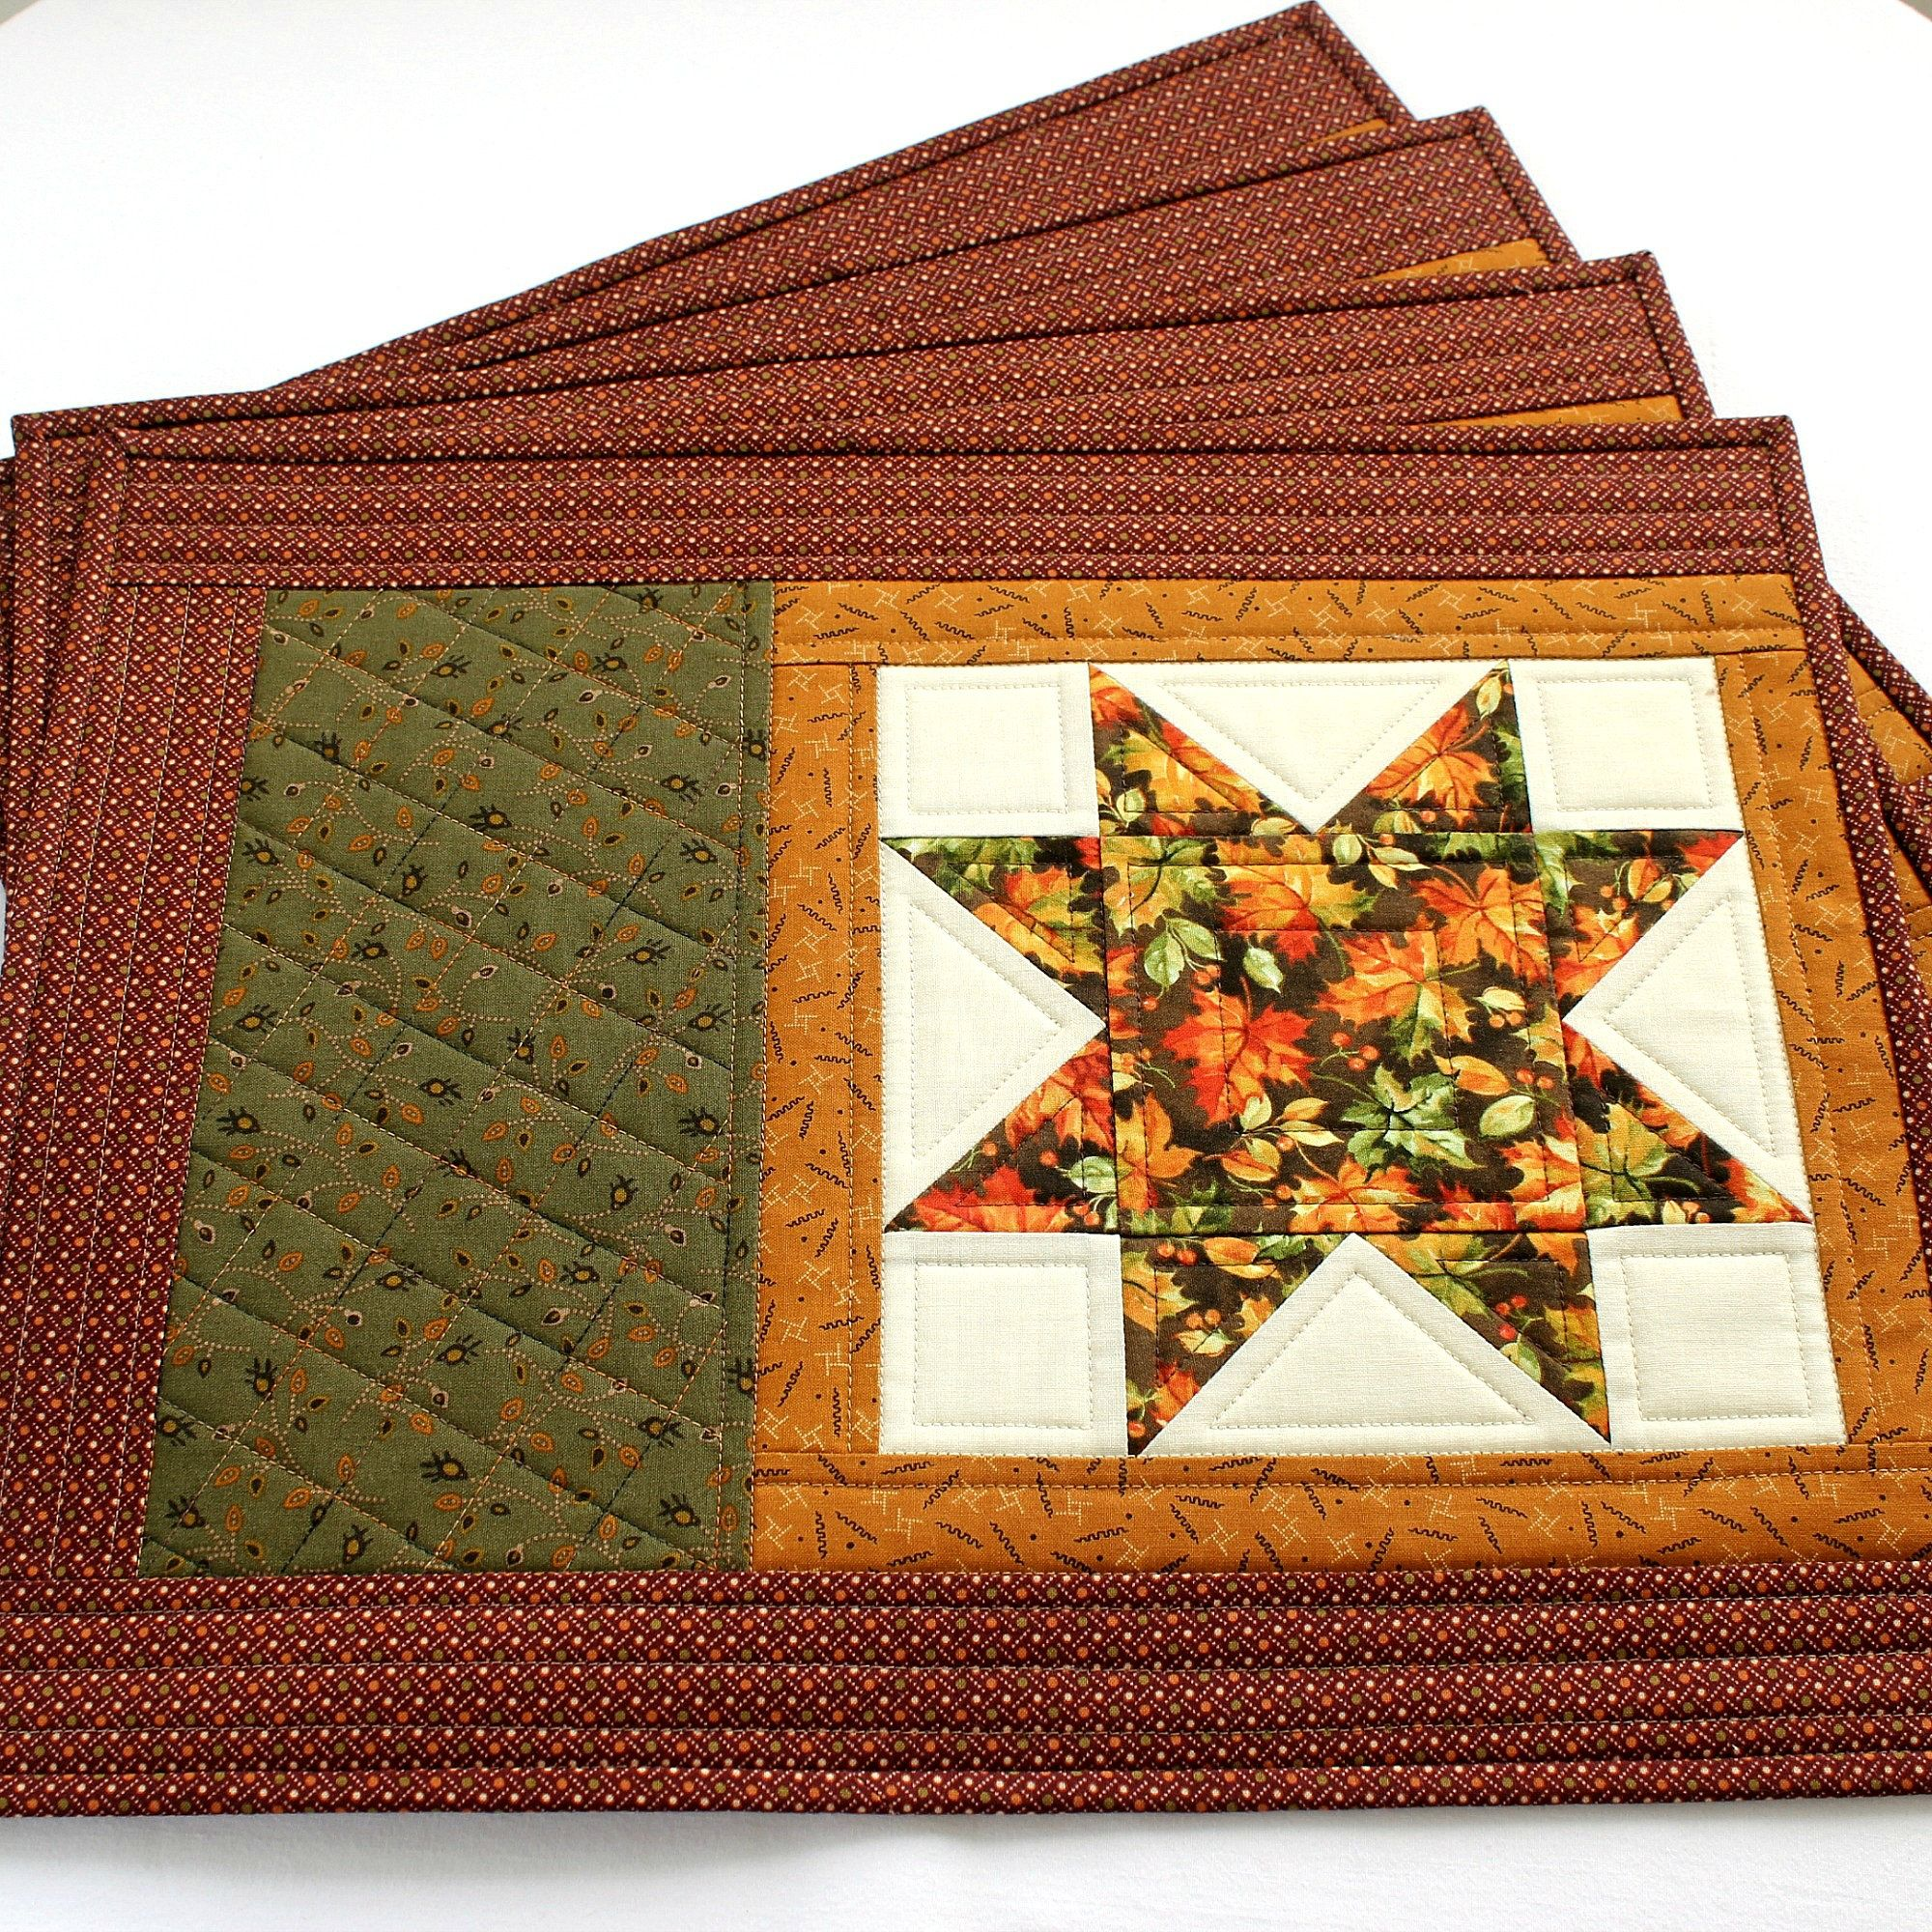 Quilted Fall Placemats Set of 2 or 4 Table Mats Etsy in